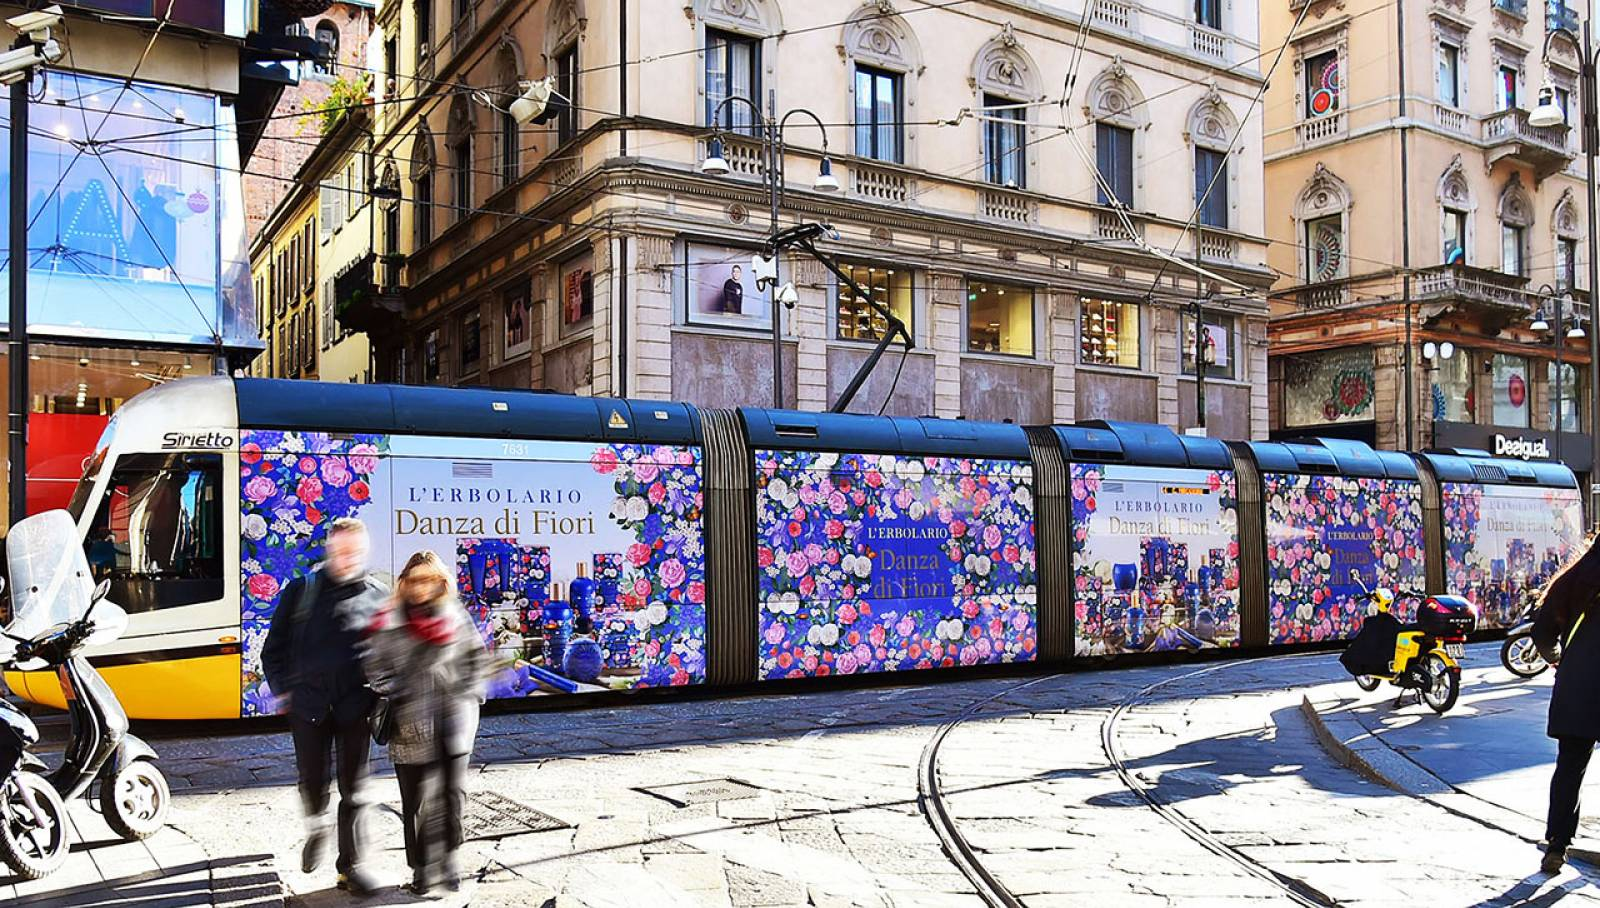 IGPDecaux Out of Home advertising Wrapped Vehicles in Milan for L'Erbolario